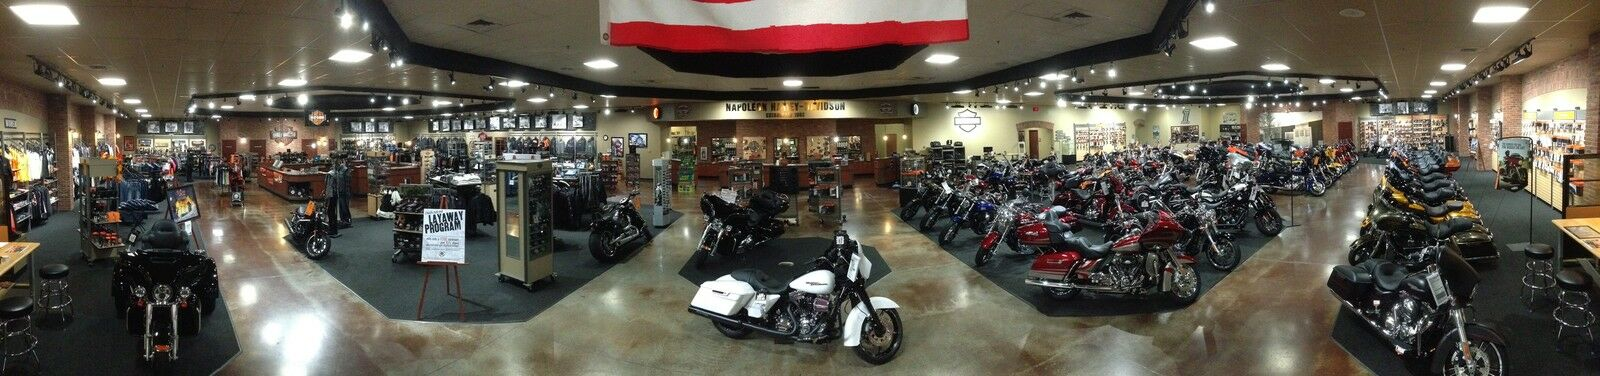 Harley-Davidson Sales and Service